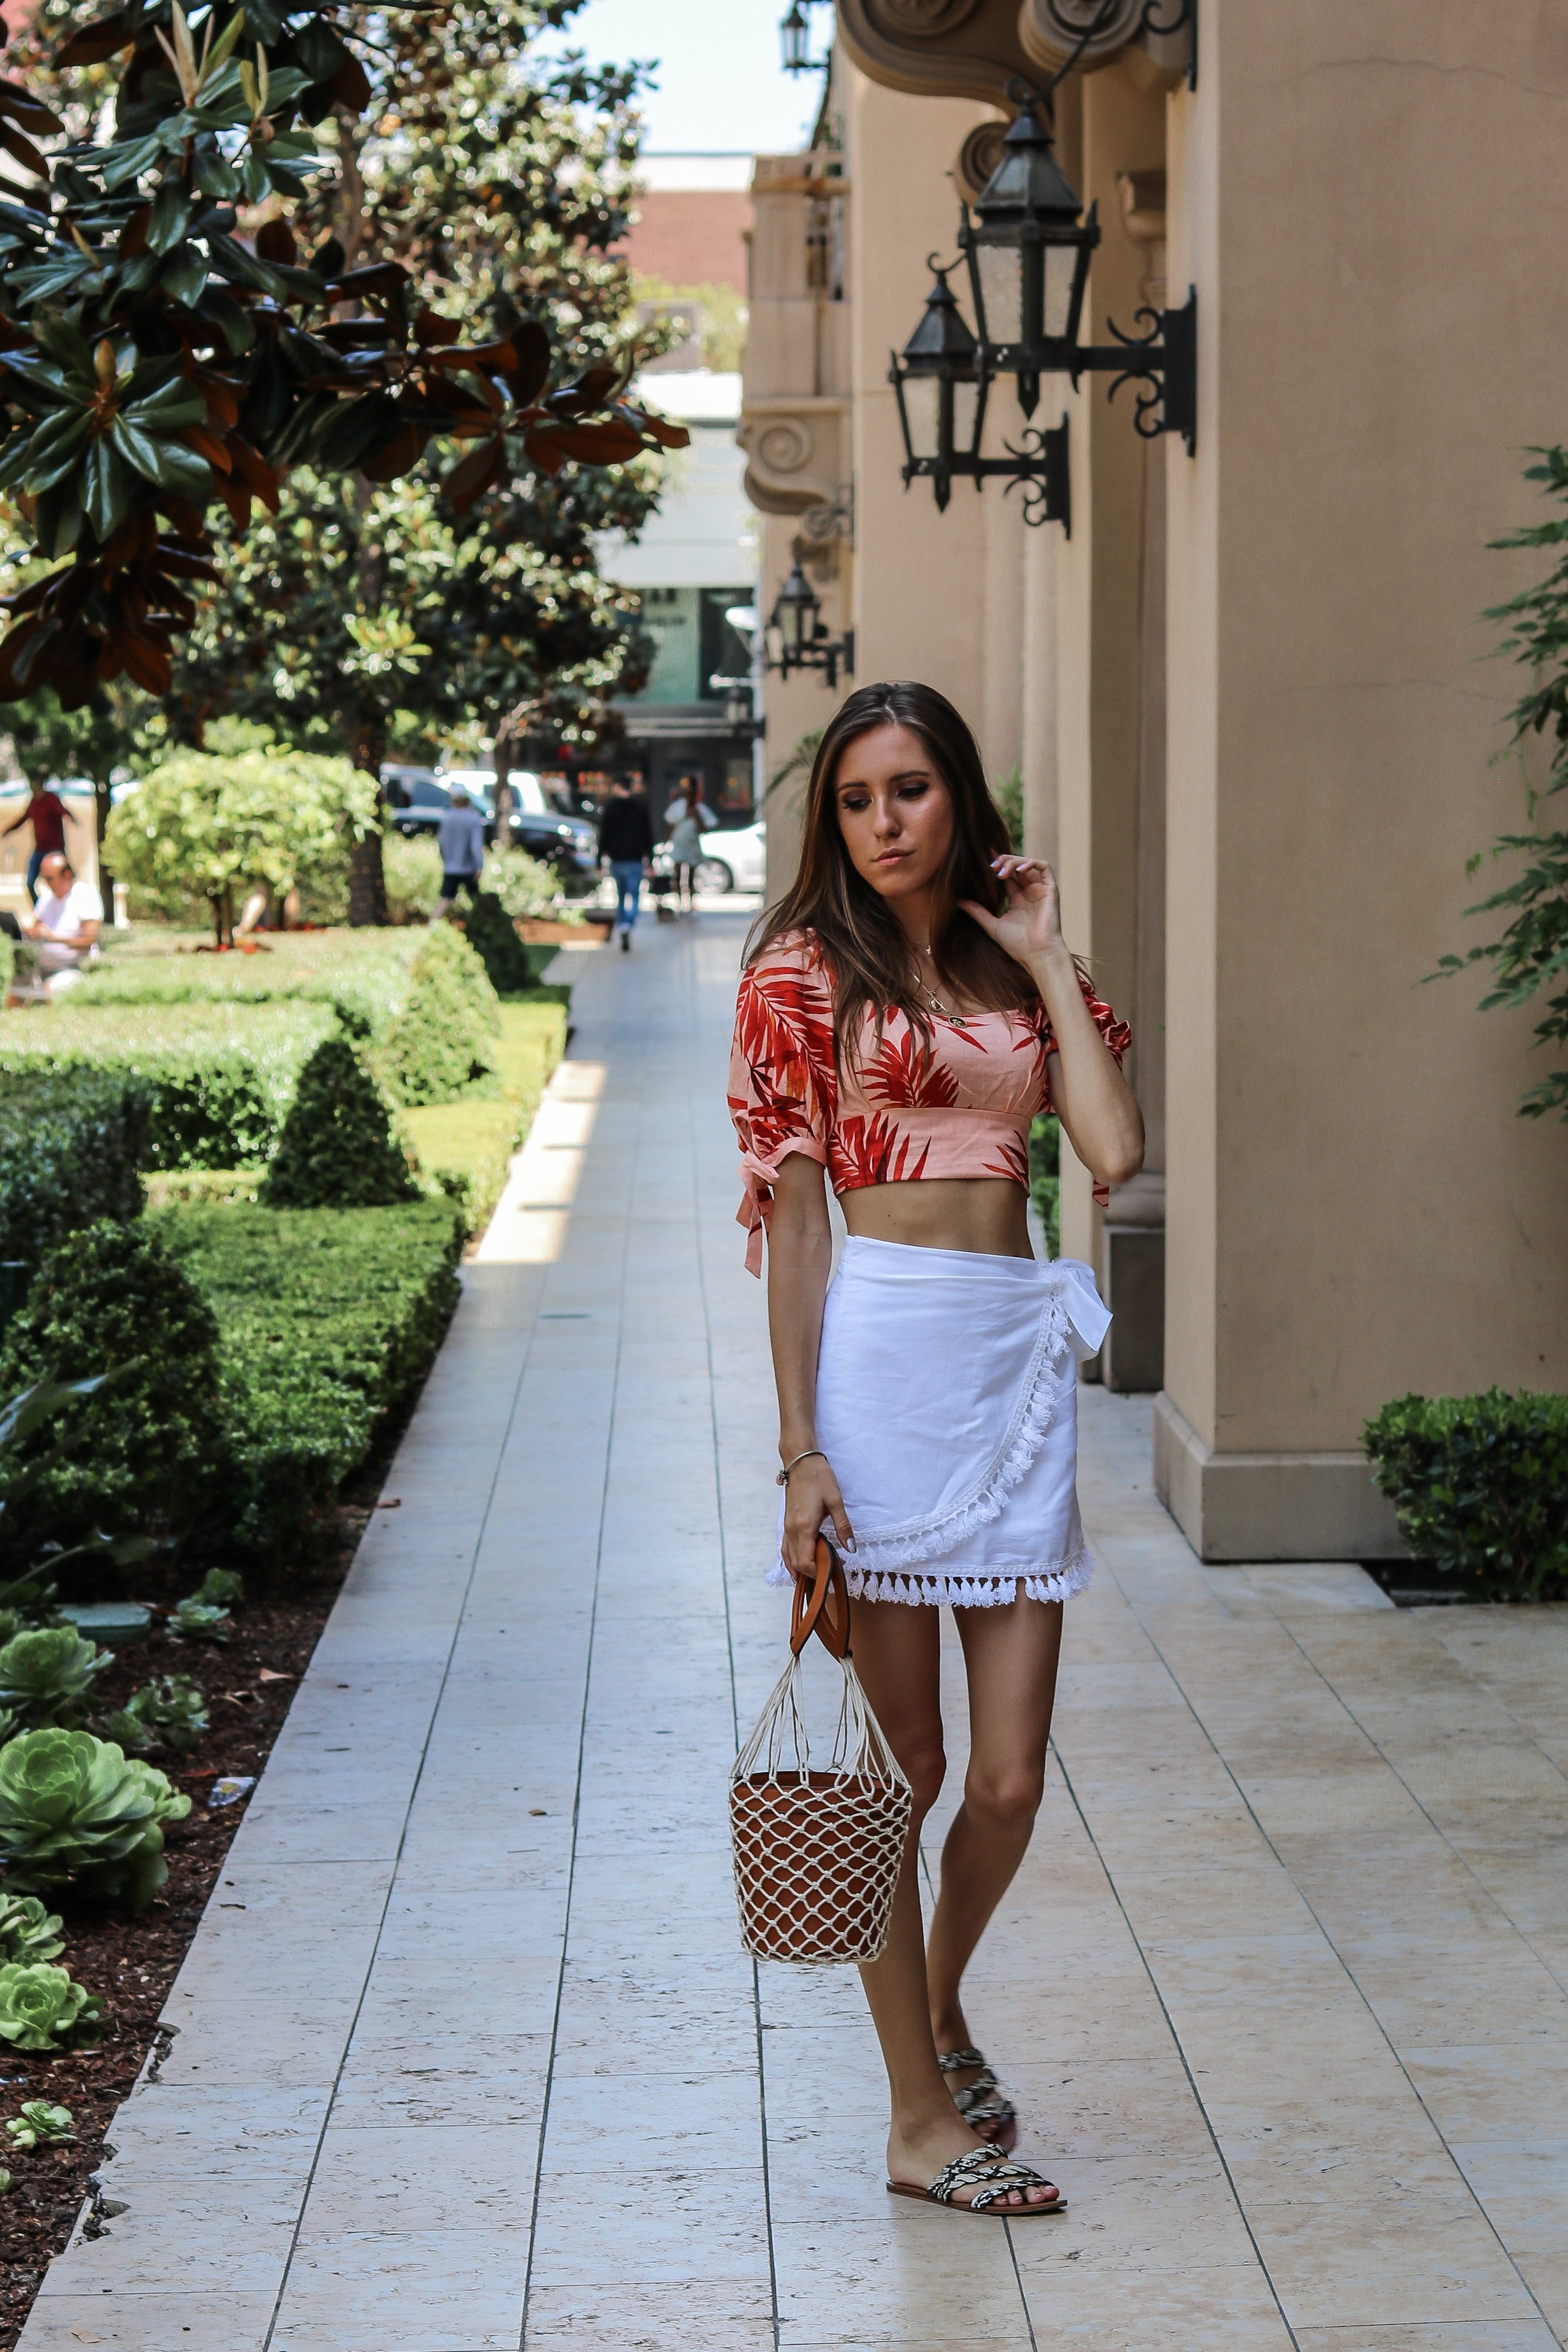 The+Hungarian+Brunette+summer+vacation+outfit+%281+of+9%29.jpg